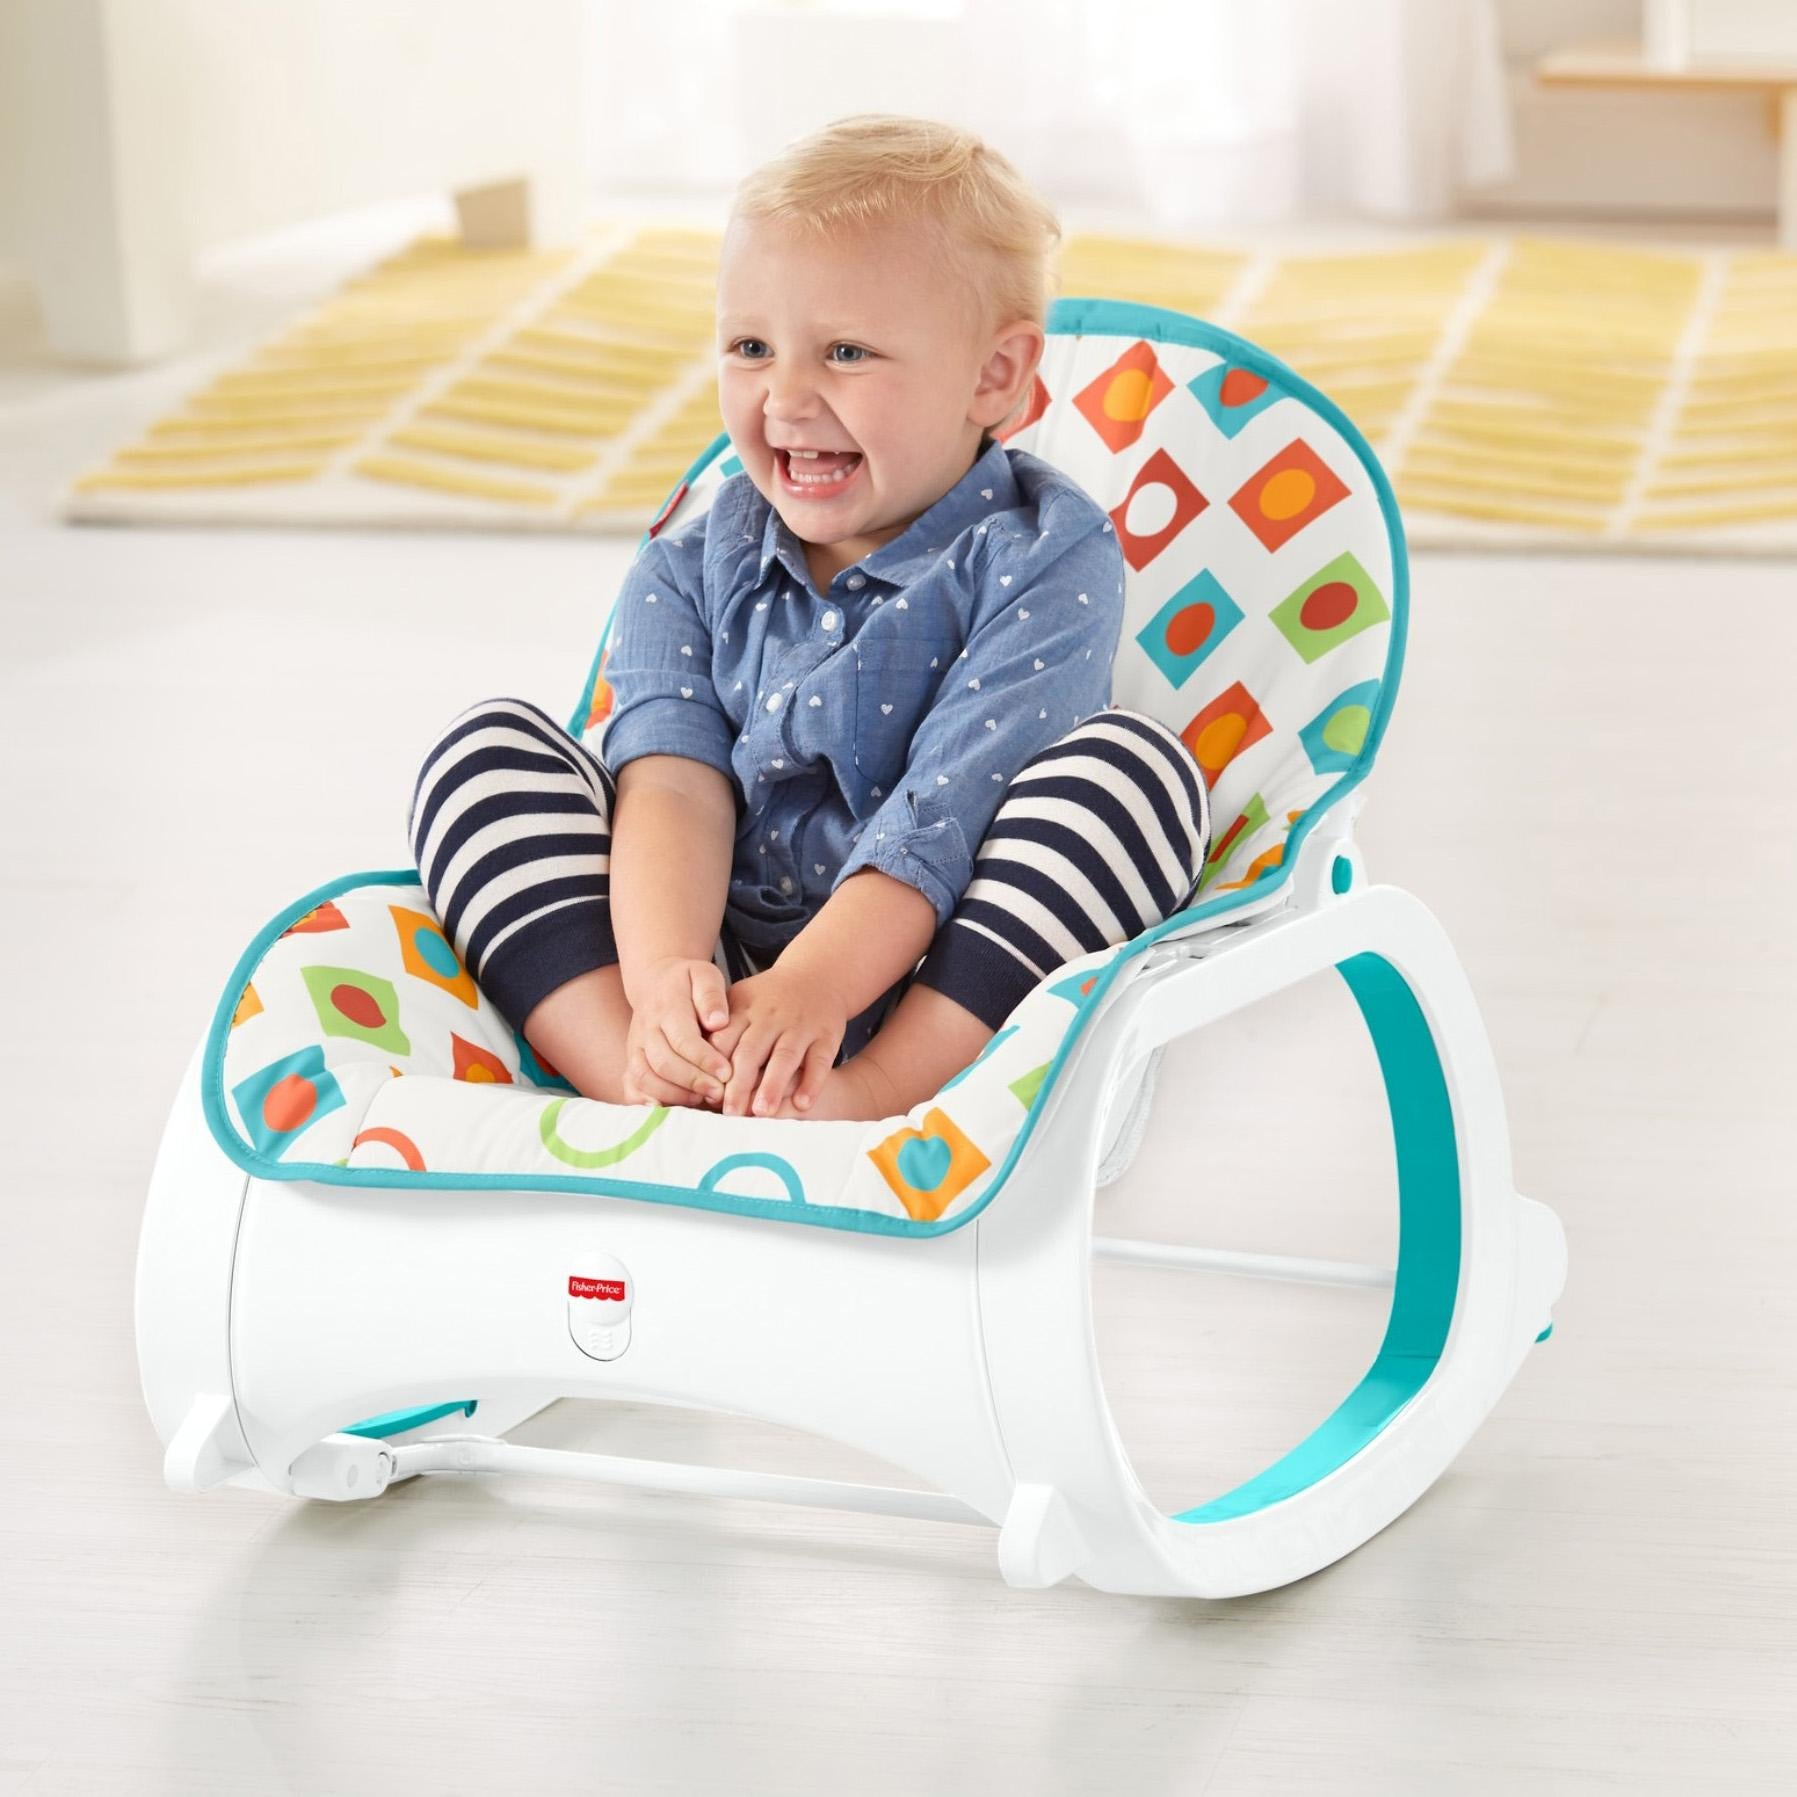 Fisher Price Baby Infant-to-Toddler Rocker Calming Vibrations Soothe Comfort Baby